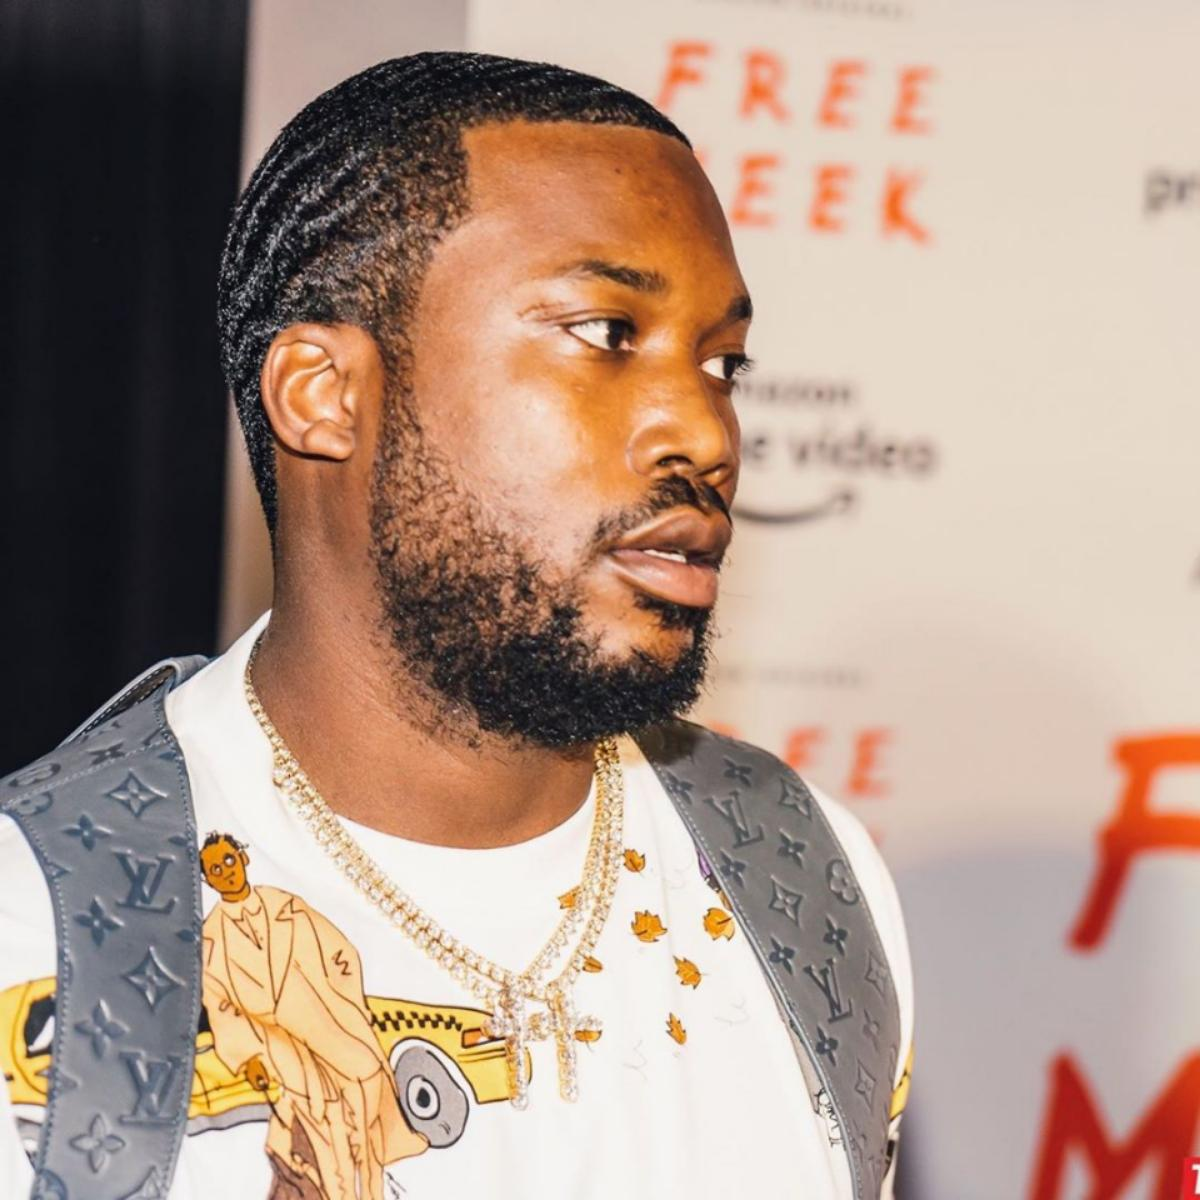 Social Media Taken More Serious Than Reality Meek Mill